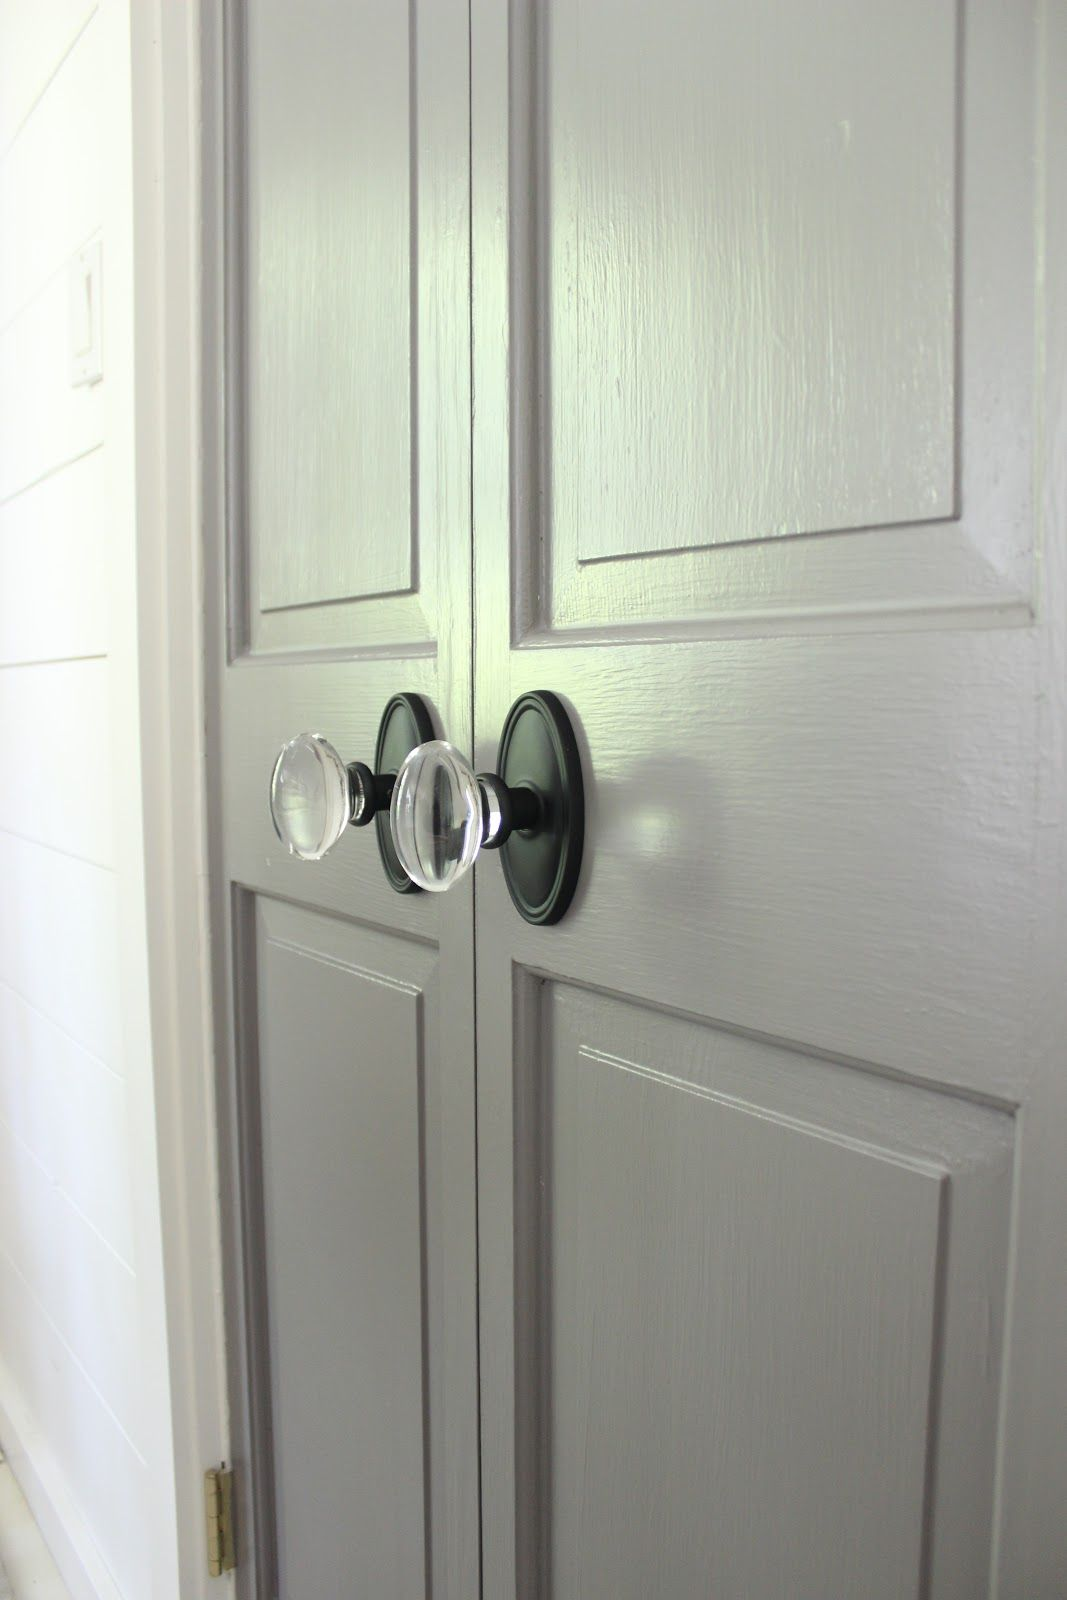 Emtek Bristol Knob. SO fun and pretty. ://emtek.com & DOORKNOBS for new house throughout house including closet doors ... Pezcame.Com